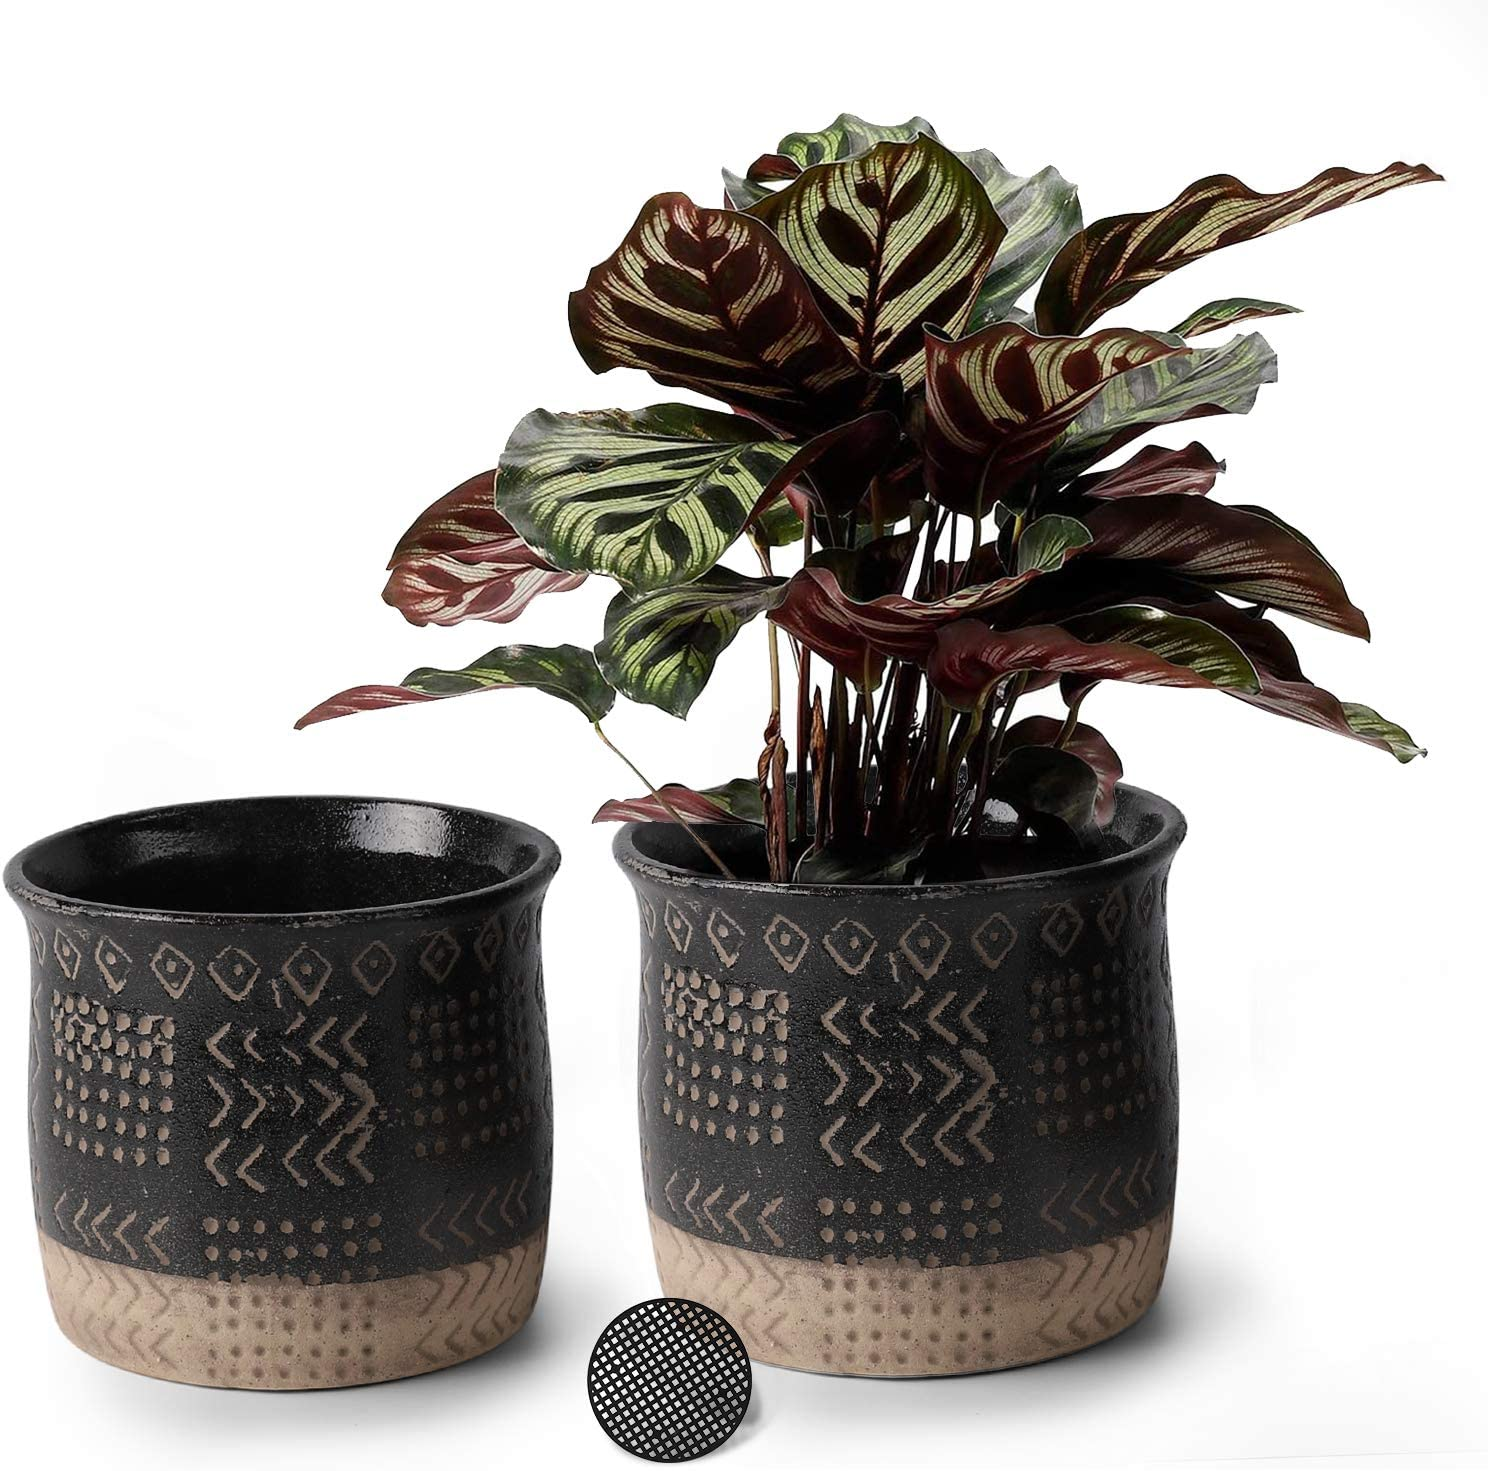 5.5 Inch Ceramic Planters Set of 2,Retro Pattern Breathable Design Round Flower Plant Pots with Drainage for Indoor and Outdoor Garden Decoration